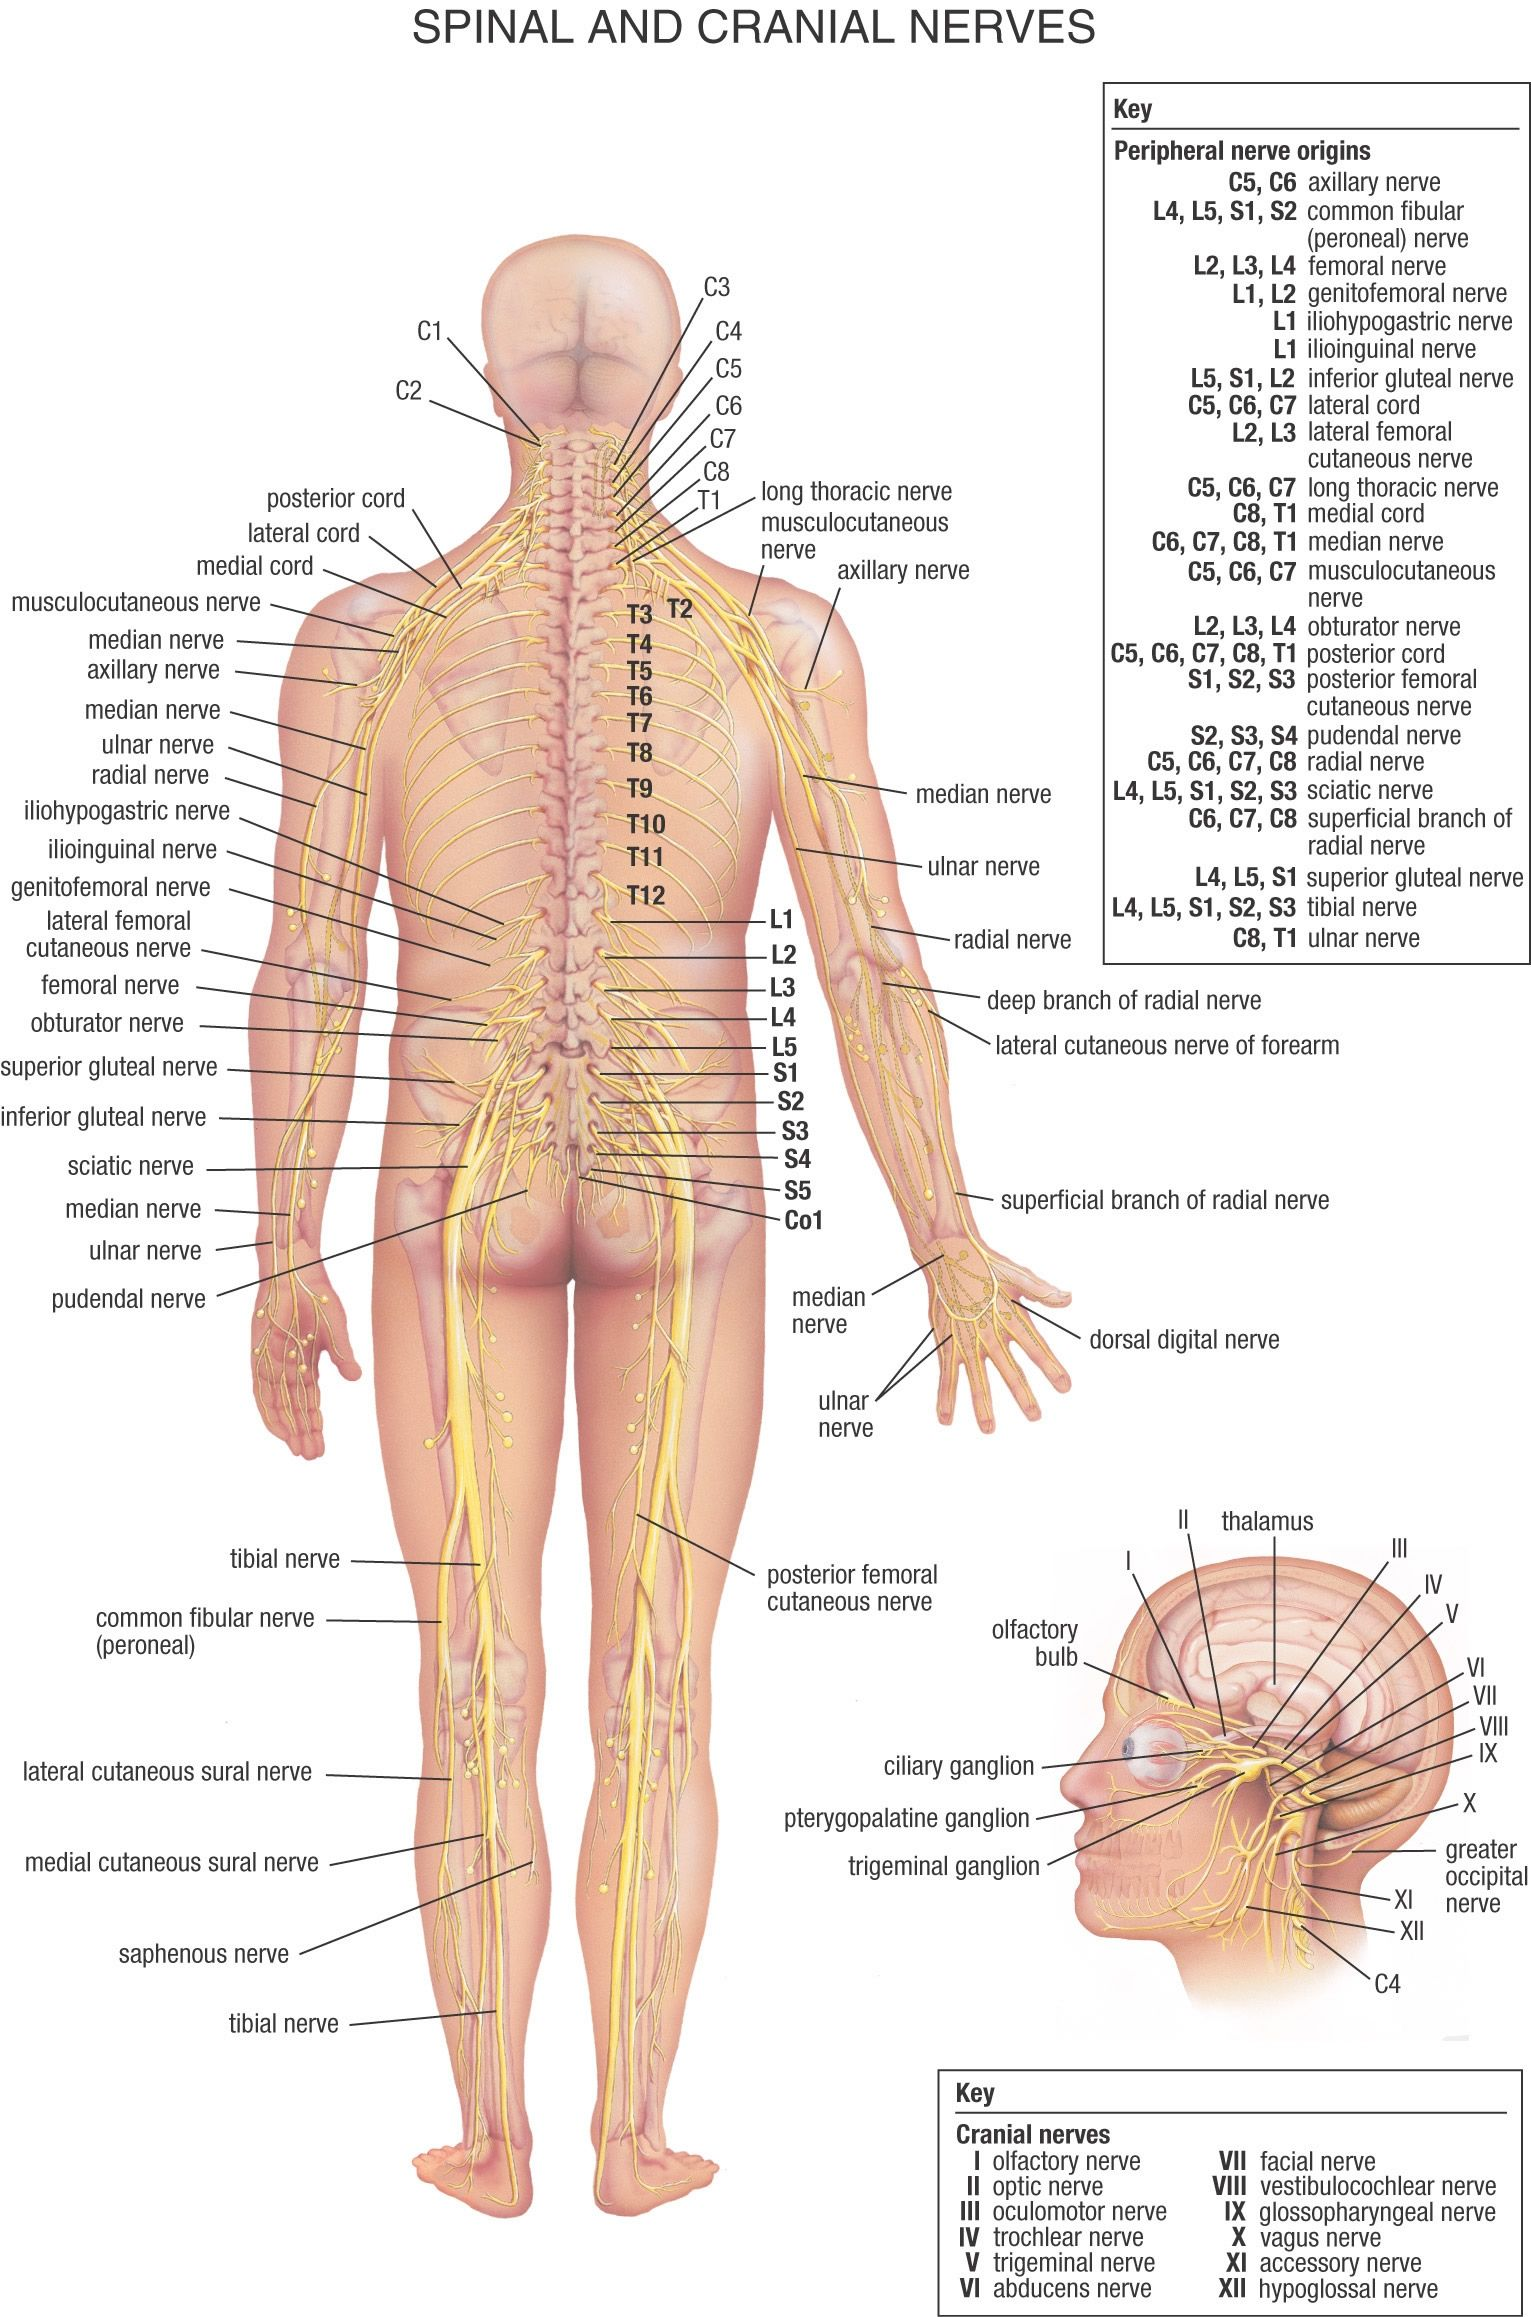 Spinal Anatomy - Nerves | Anatomy Visuals | Pinterest | Anatomy ...